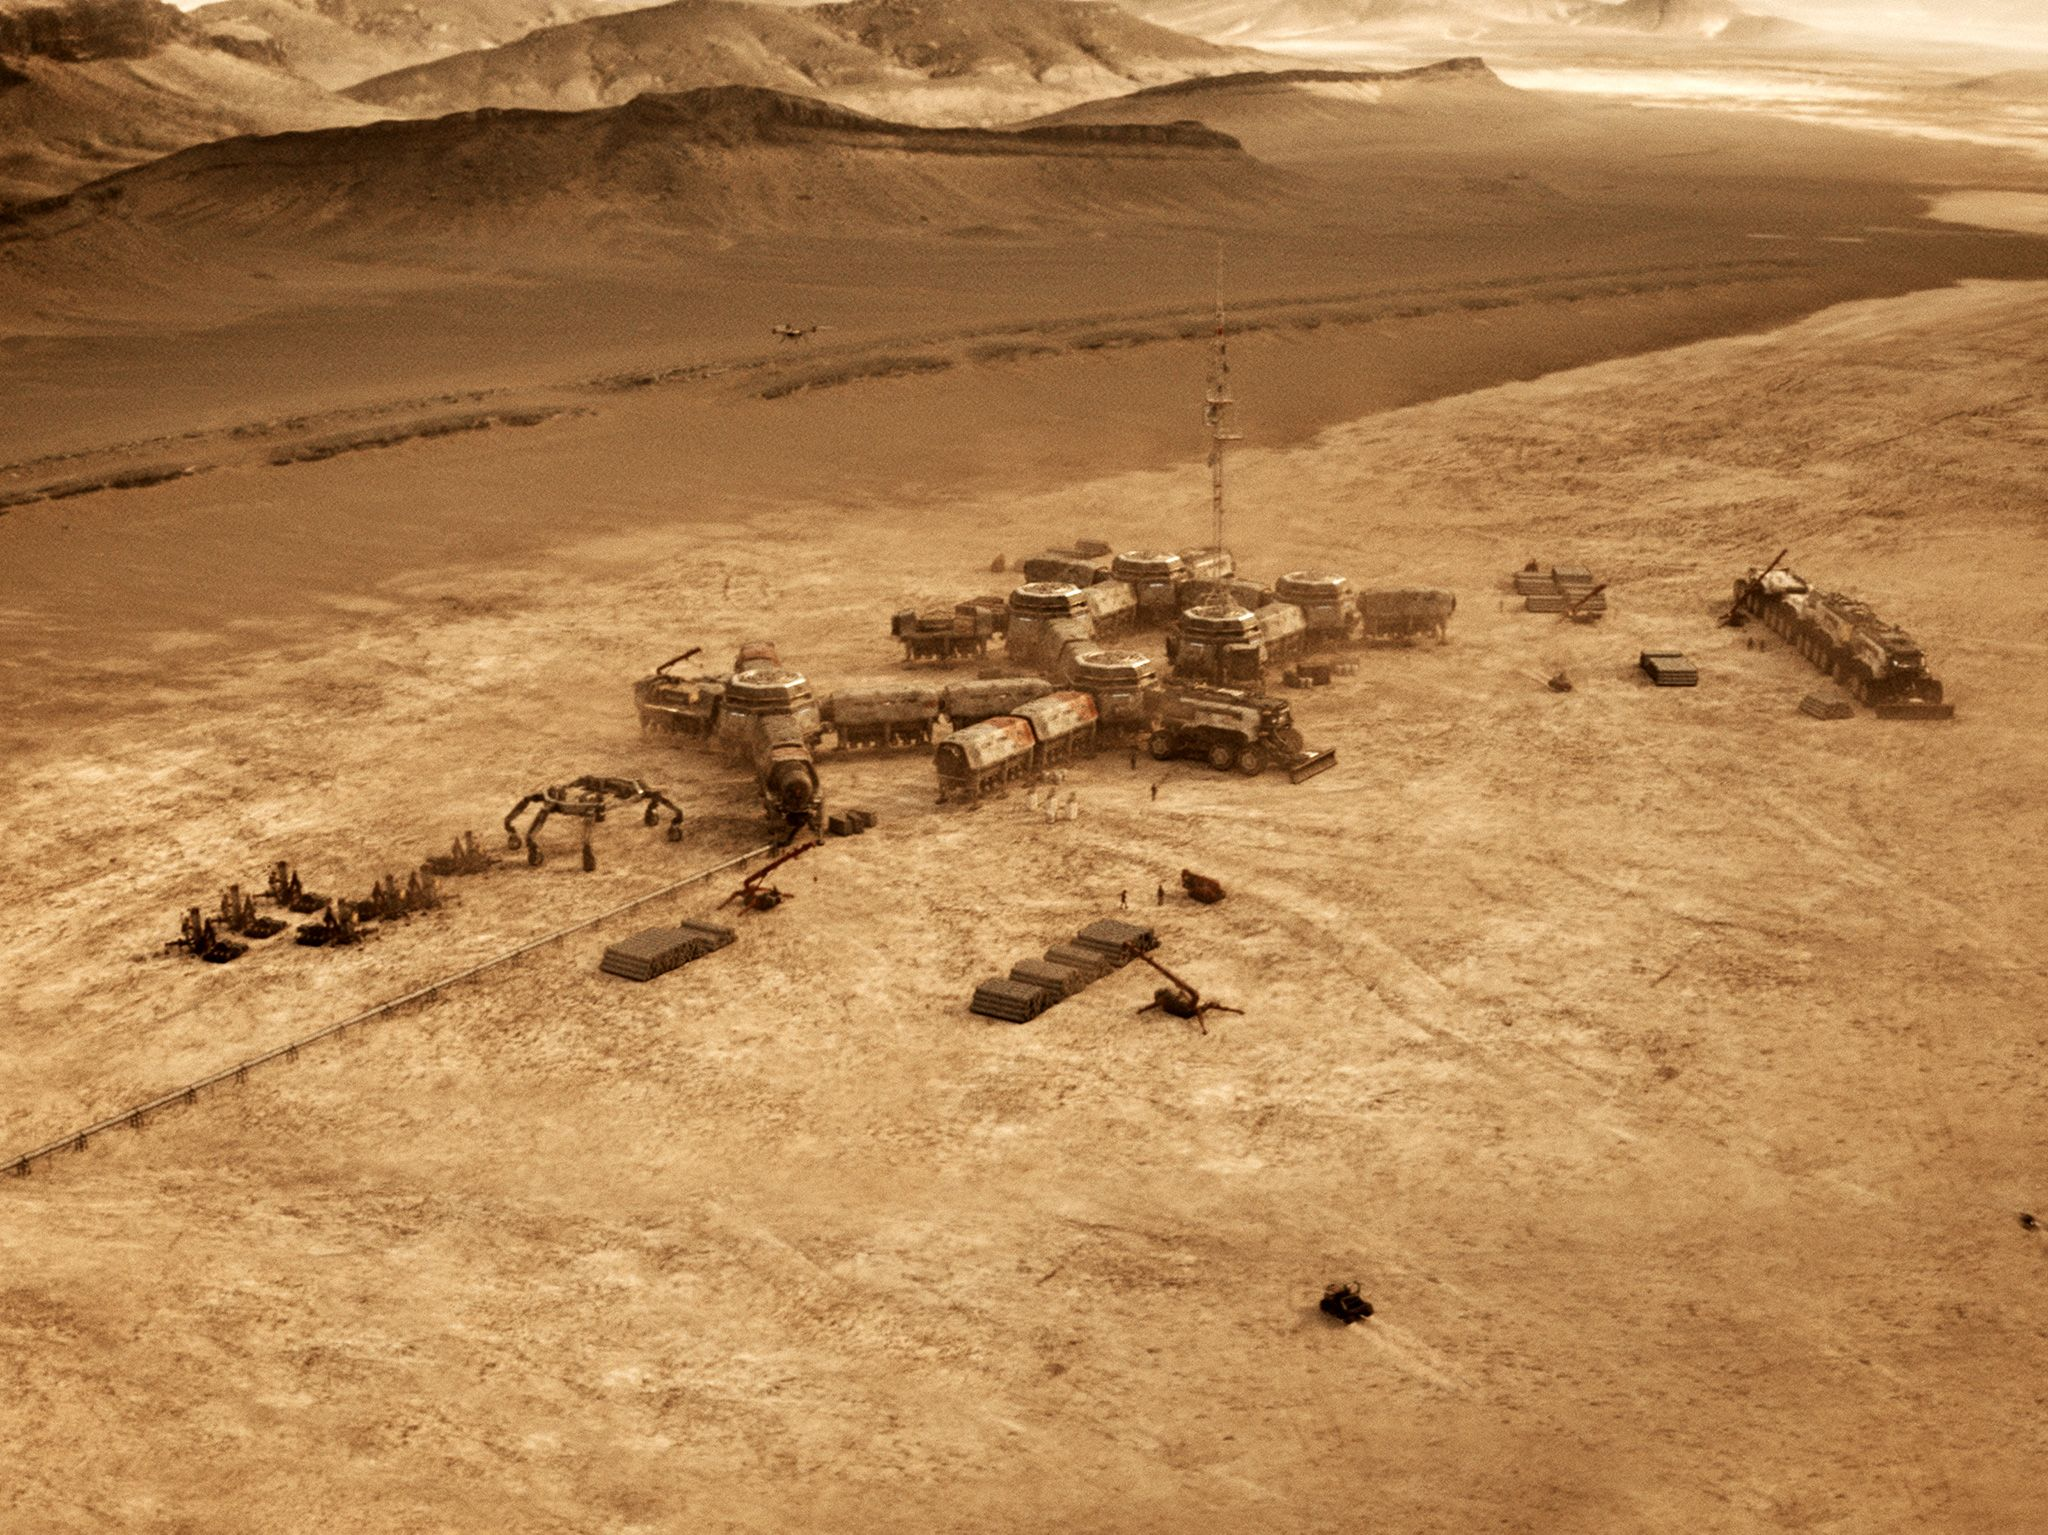 CGI: The whole of Lukrum colony on the Martian surface. This image is from Mars. [Foto del giorno - November 2018]